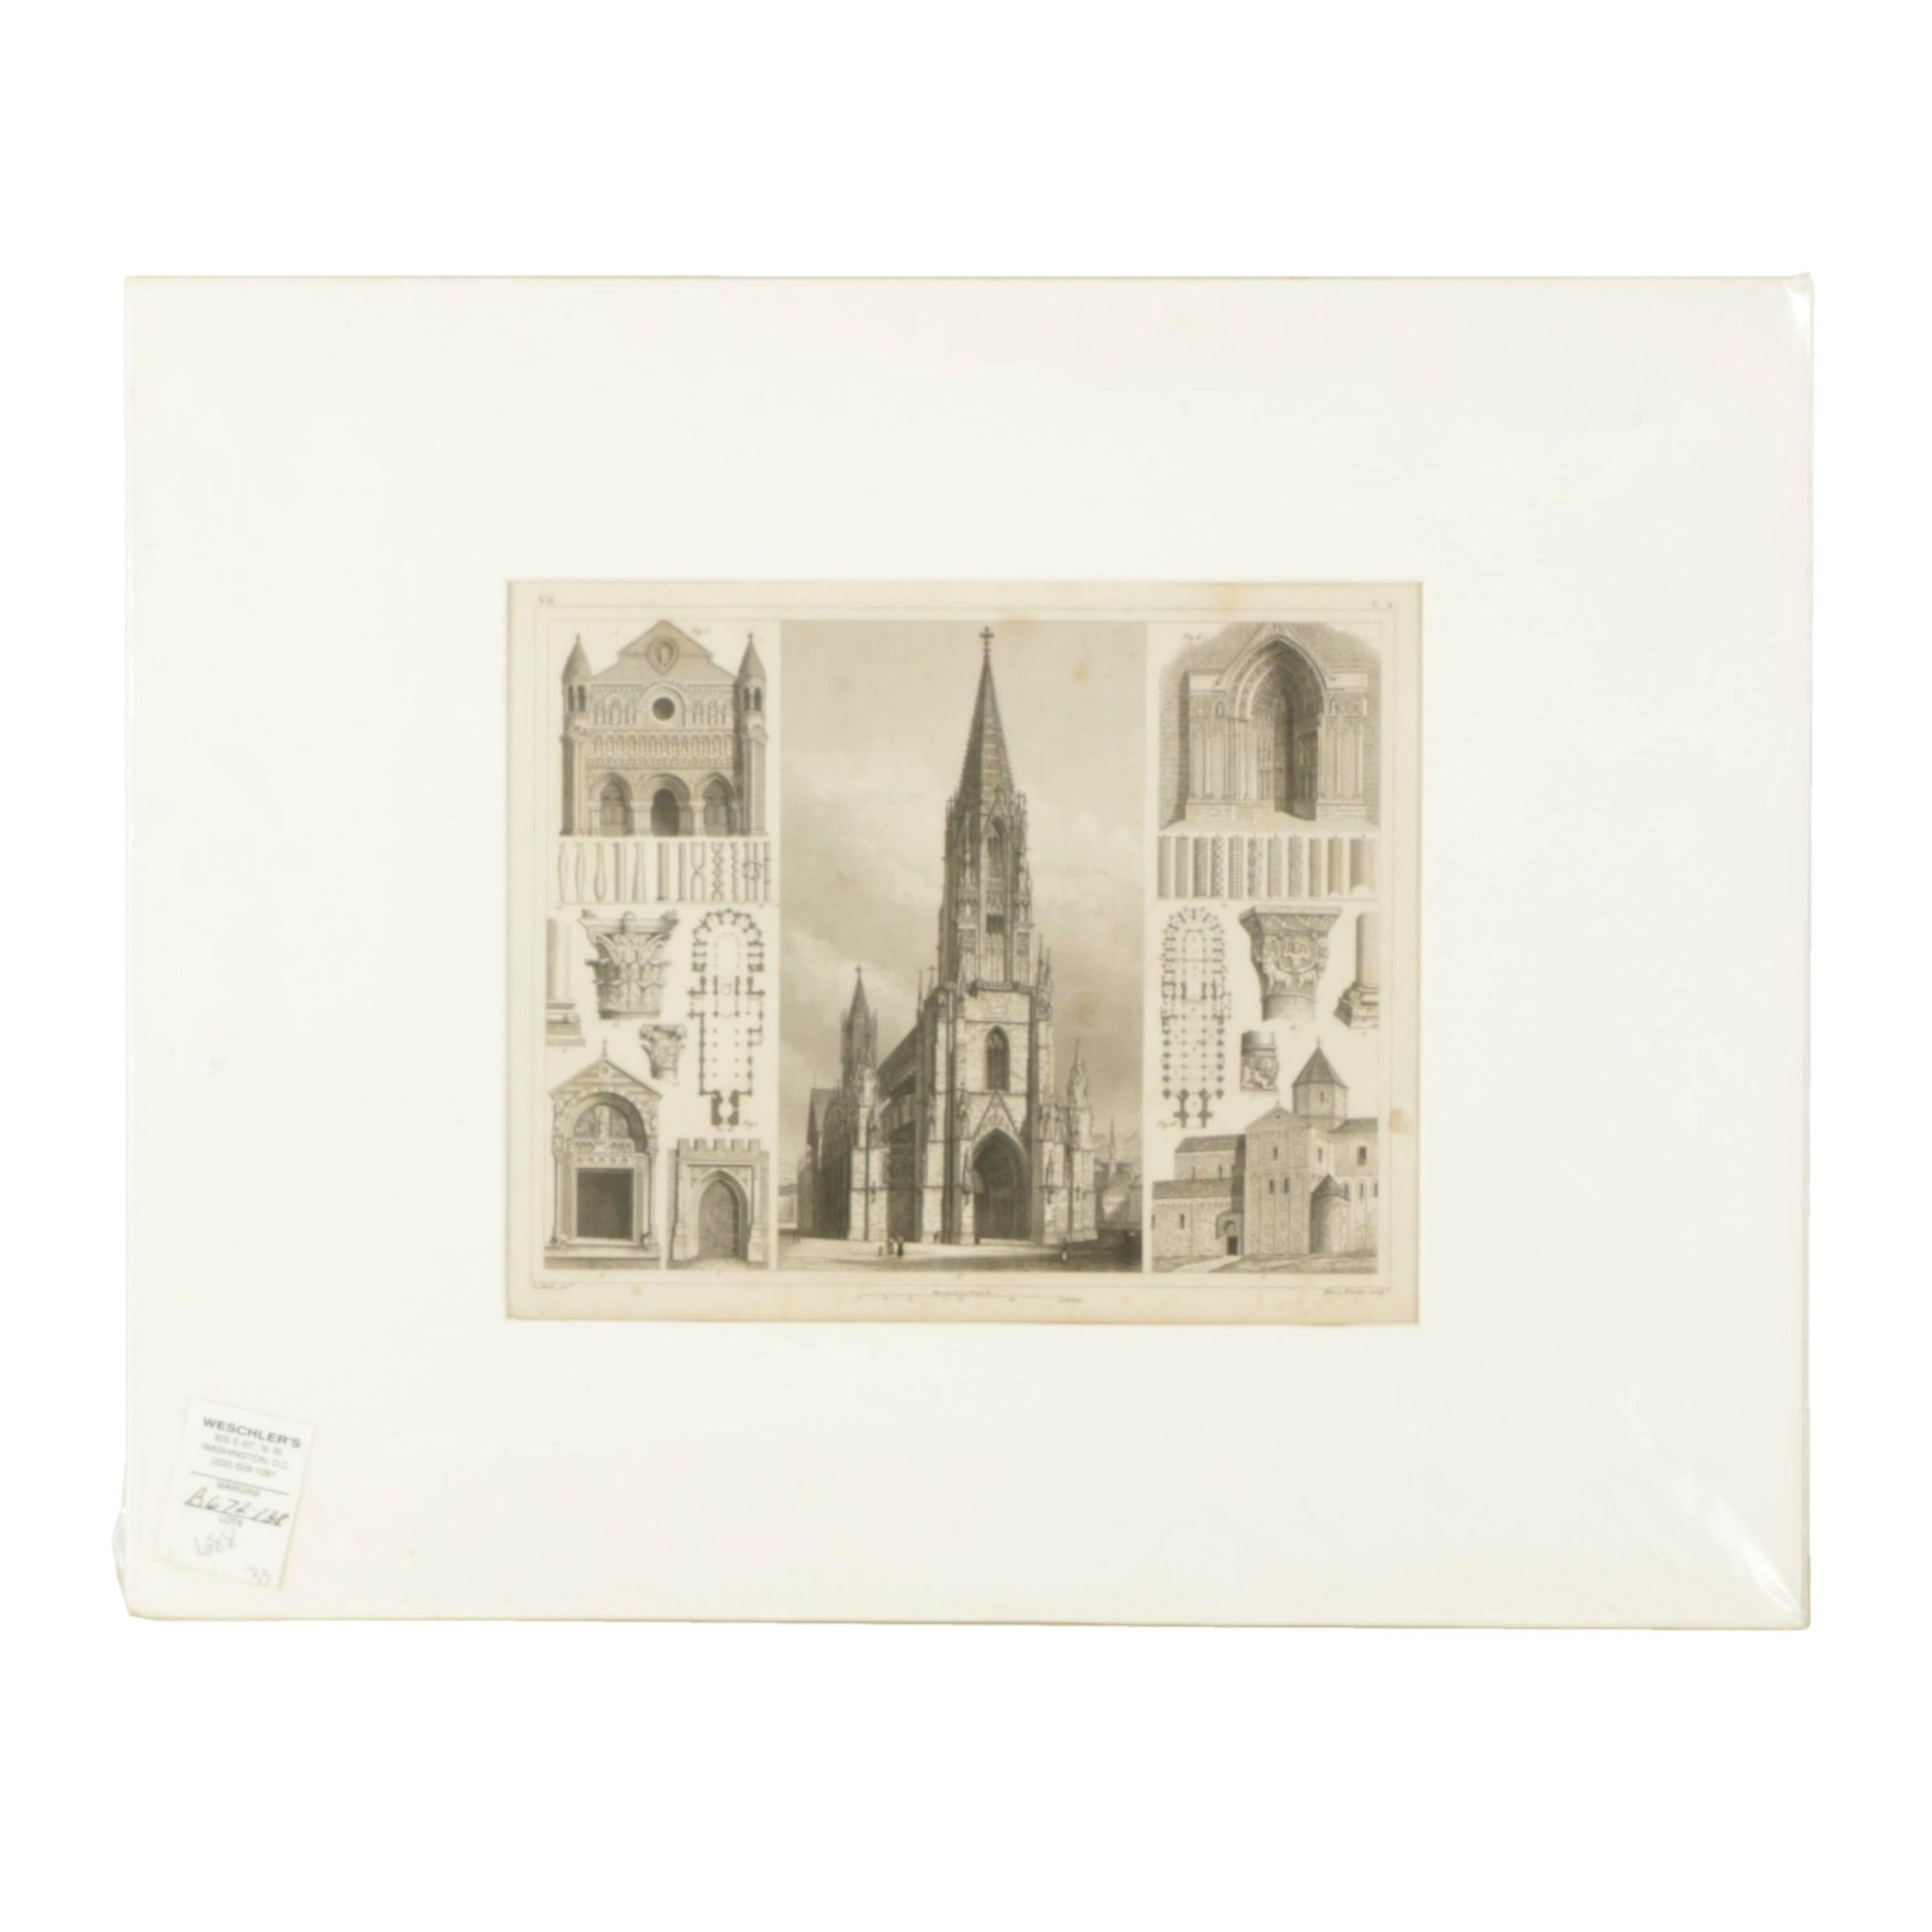 Henry Winkles Engraving on Paper of Freiburg Minster